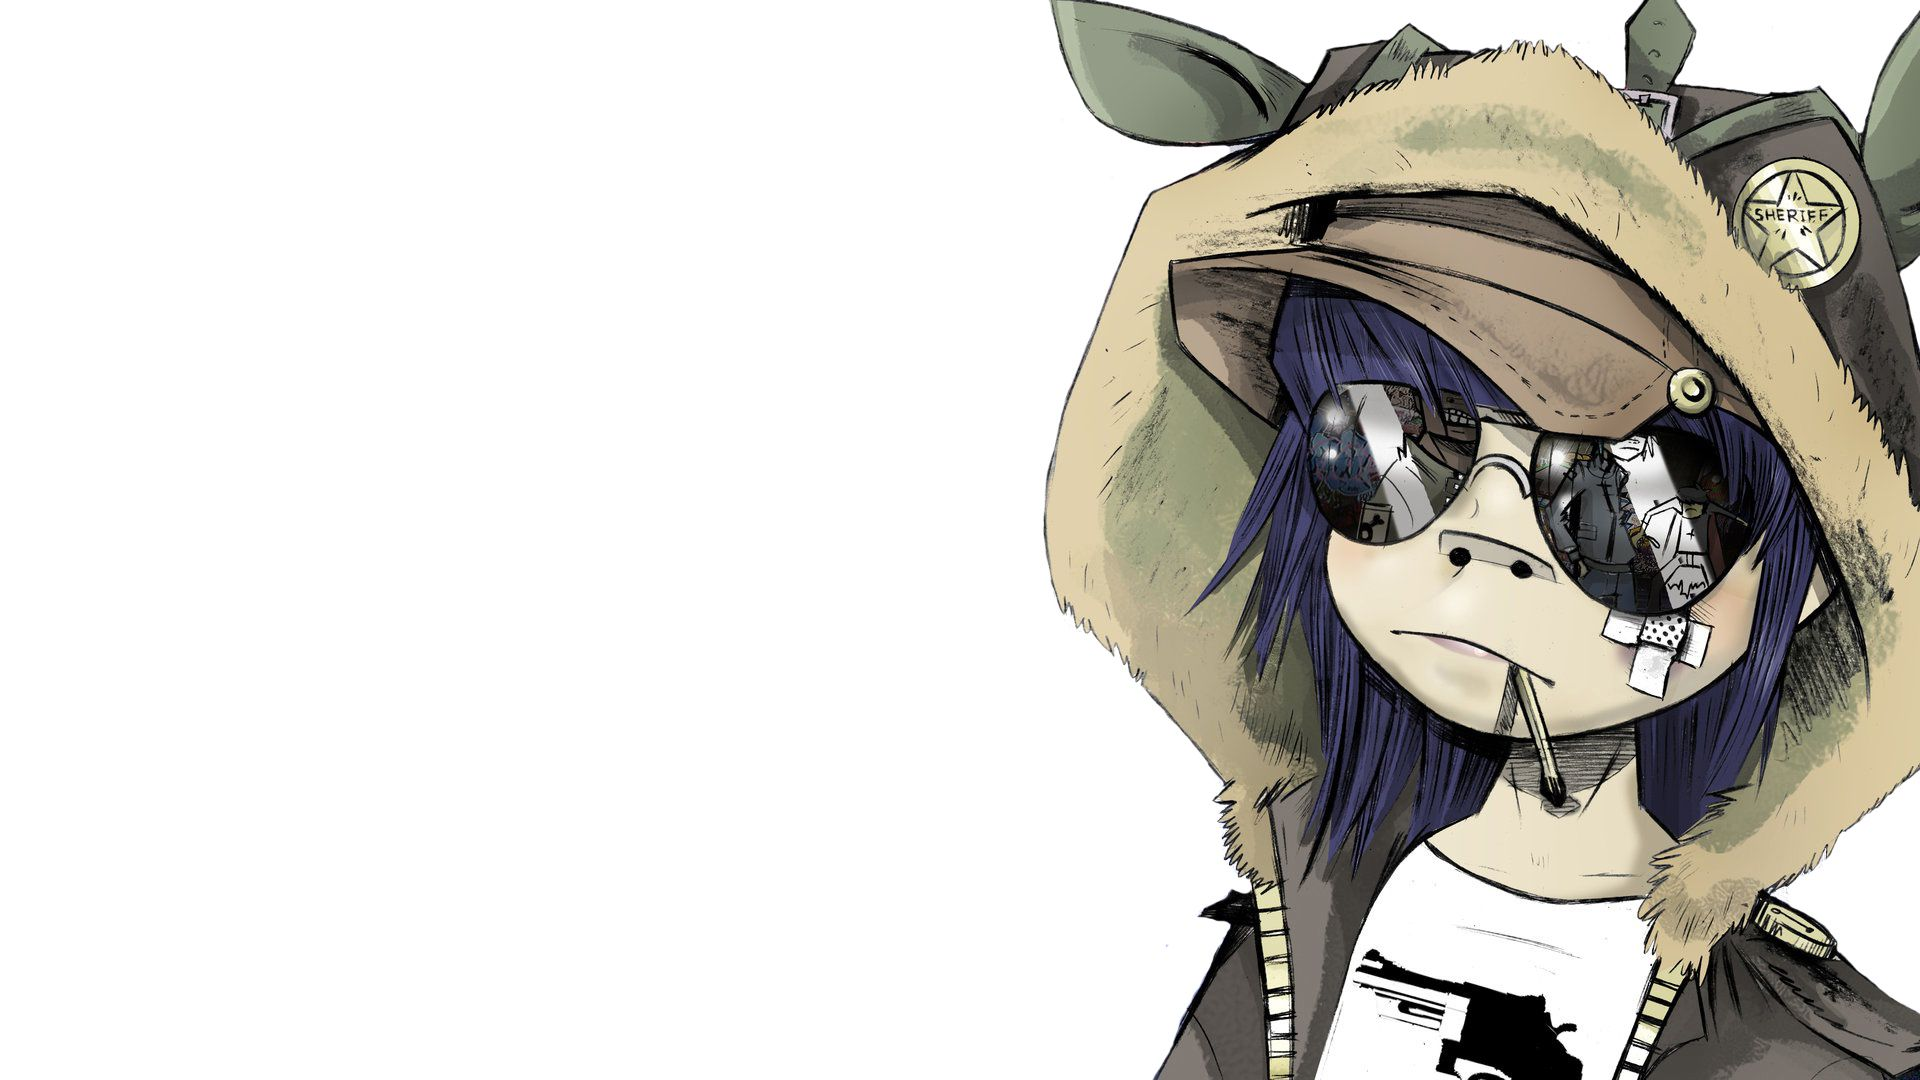 Gorillaz Hd Wallpaper 1920x1080 Id57992 Gorillaz